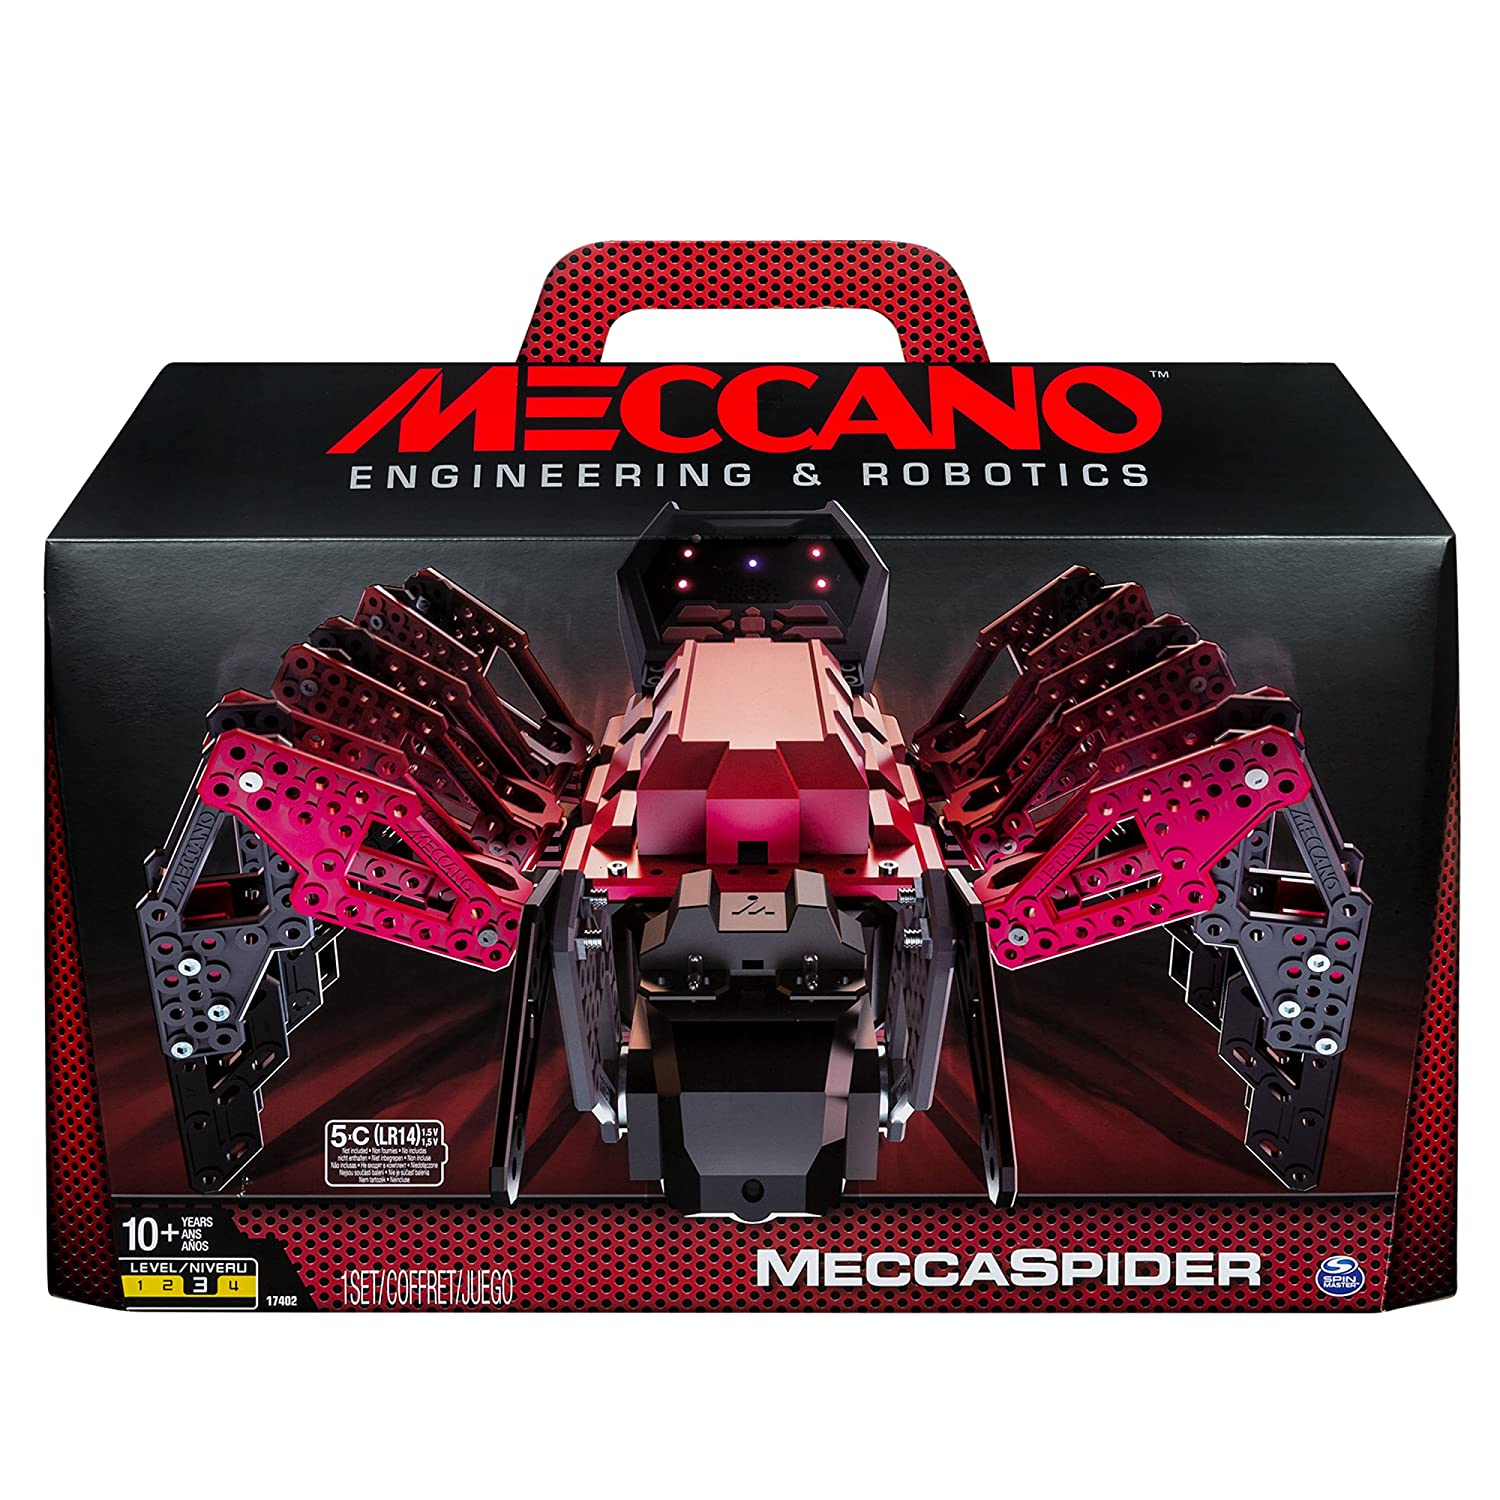 Top 7 Best Remote Control Spider Toys Reviews in 2021 14